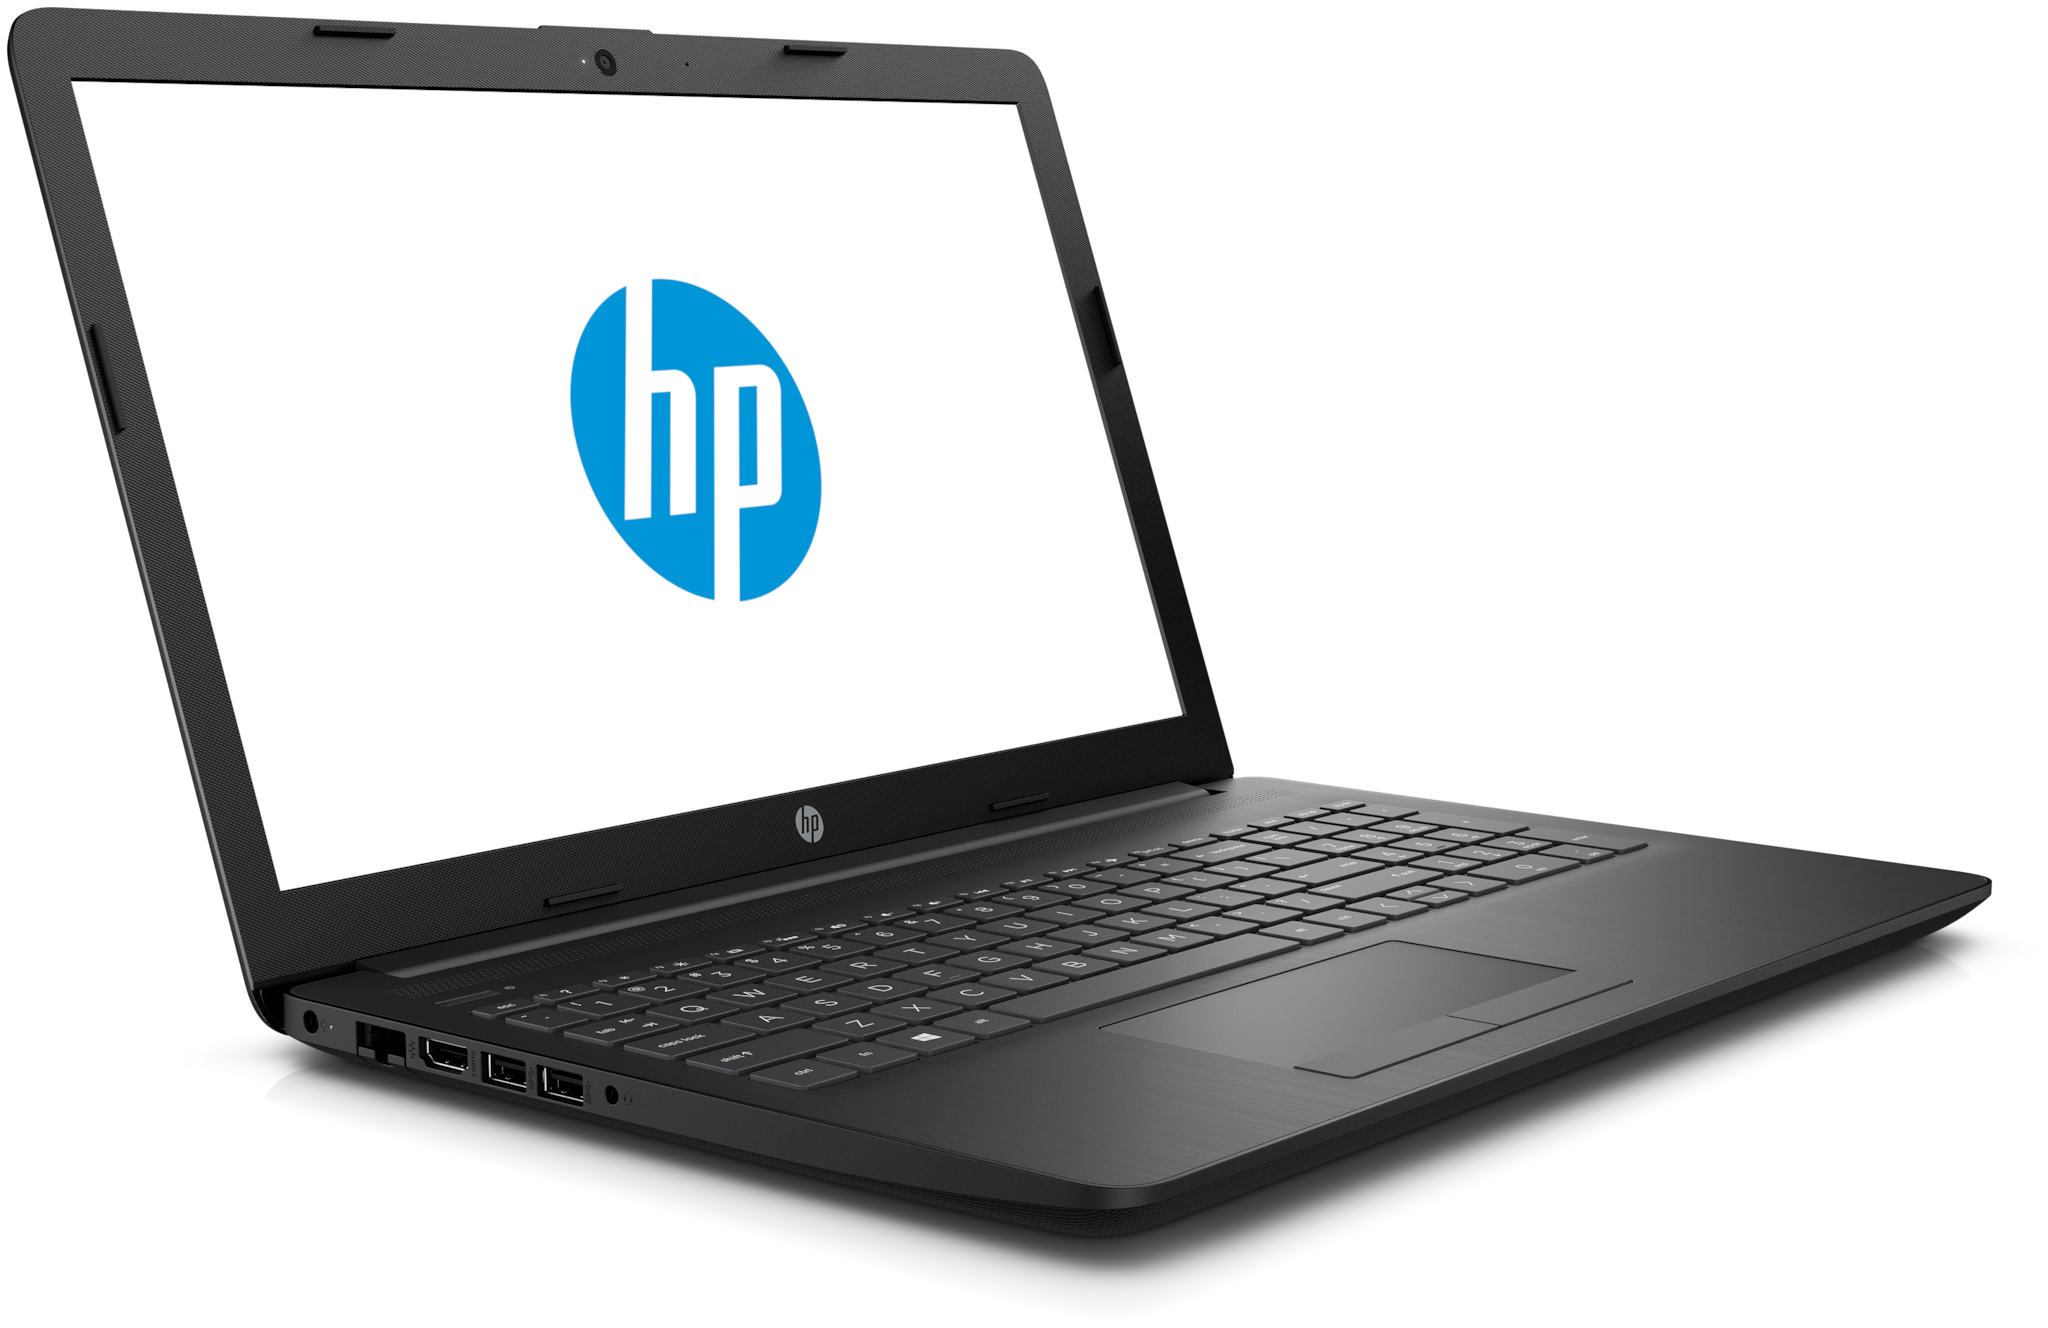 HP 15 (Core i5-8th Gen/ 8 GB RAM/ 1 TB HDD/ 39.62 cm (15.6 inch) FHD/ DOS / 2 GB Graphics) 15-da0077tx (Sparkling Black  2 Kg)